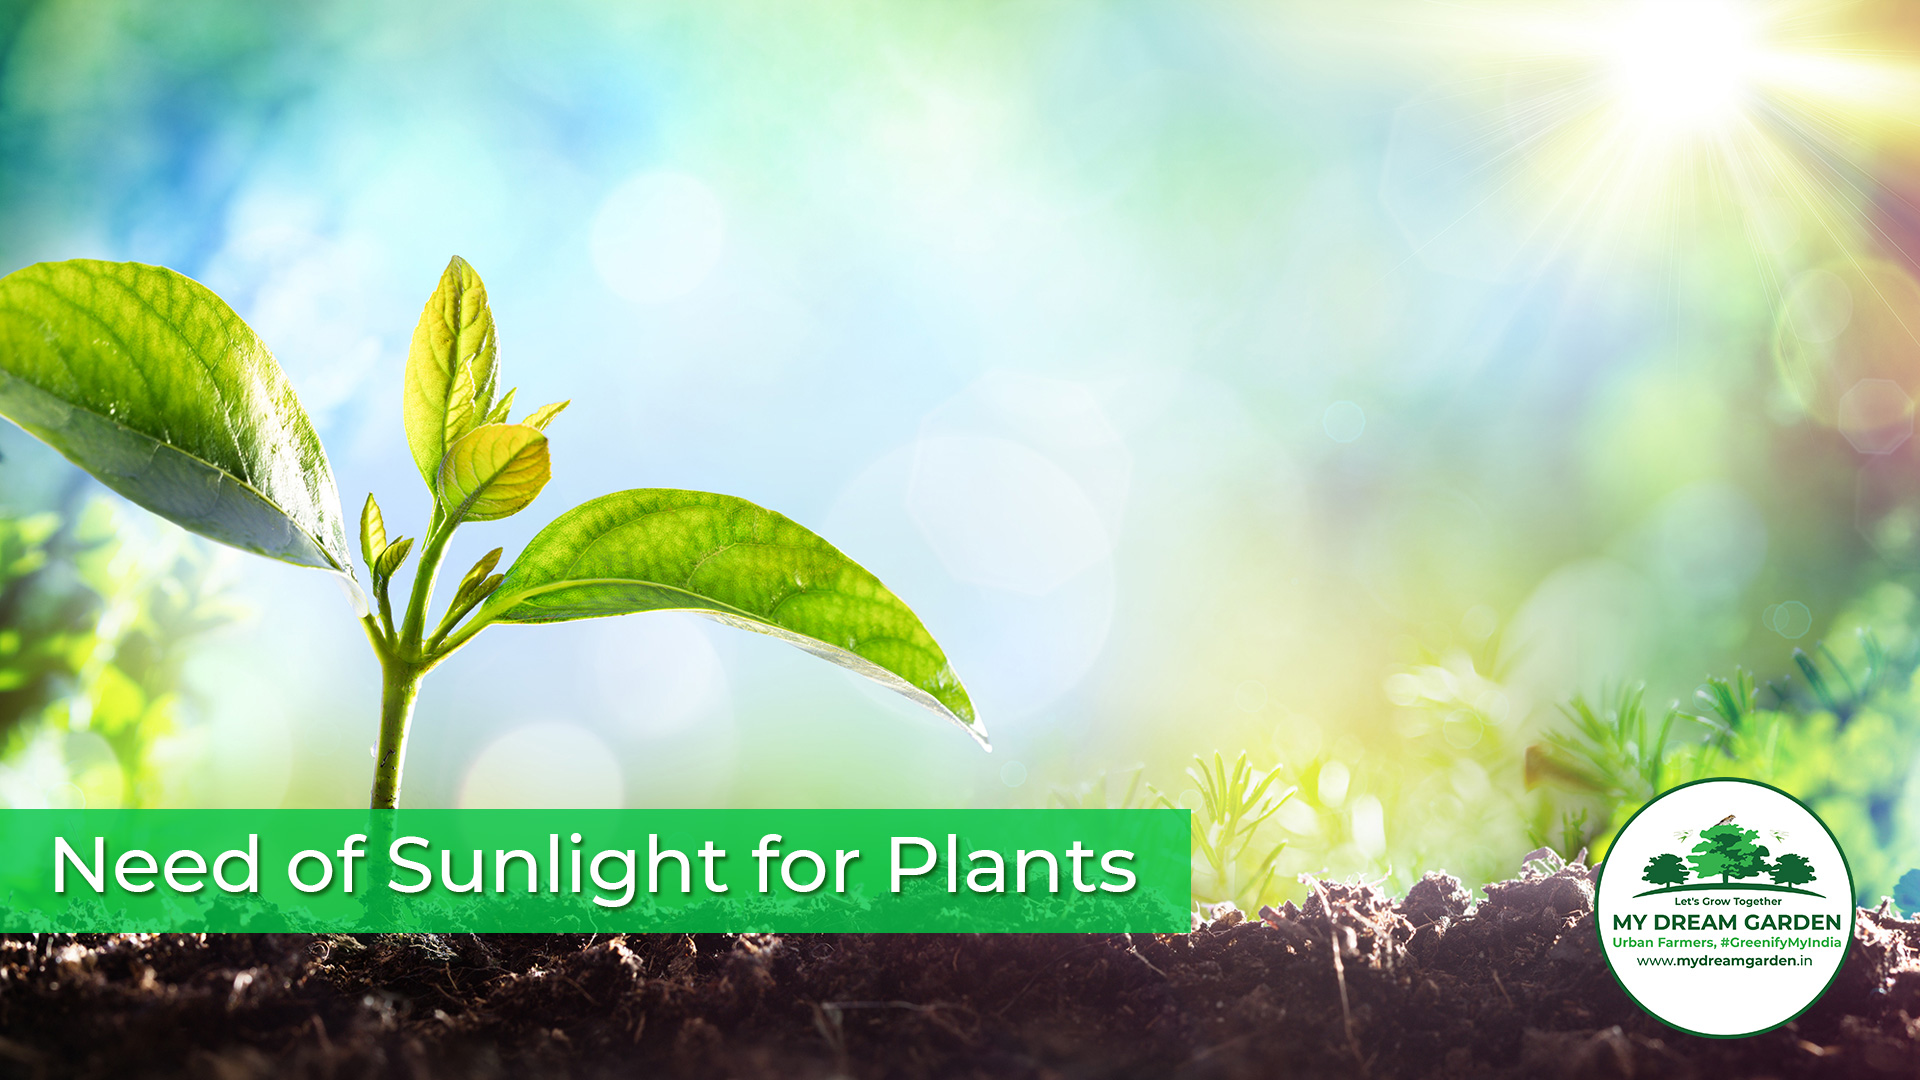 Need of Sunlight for Plants